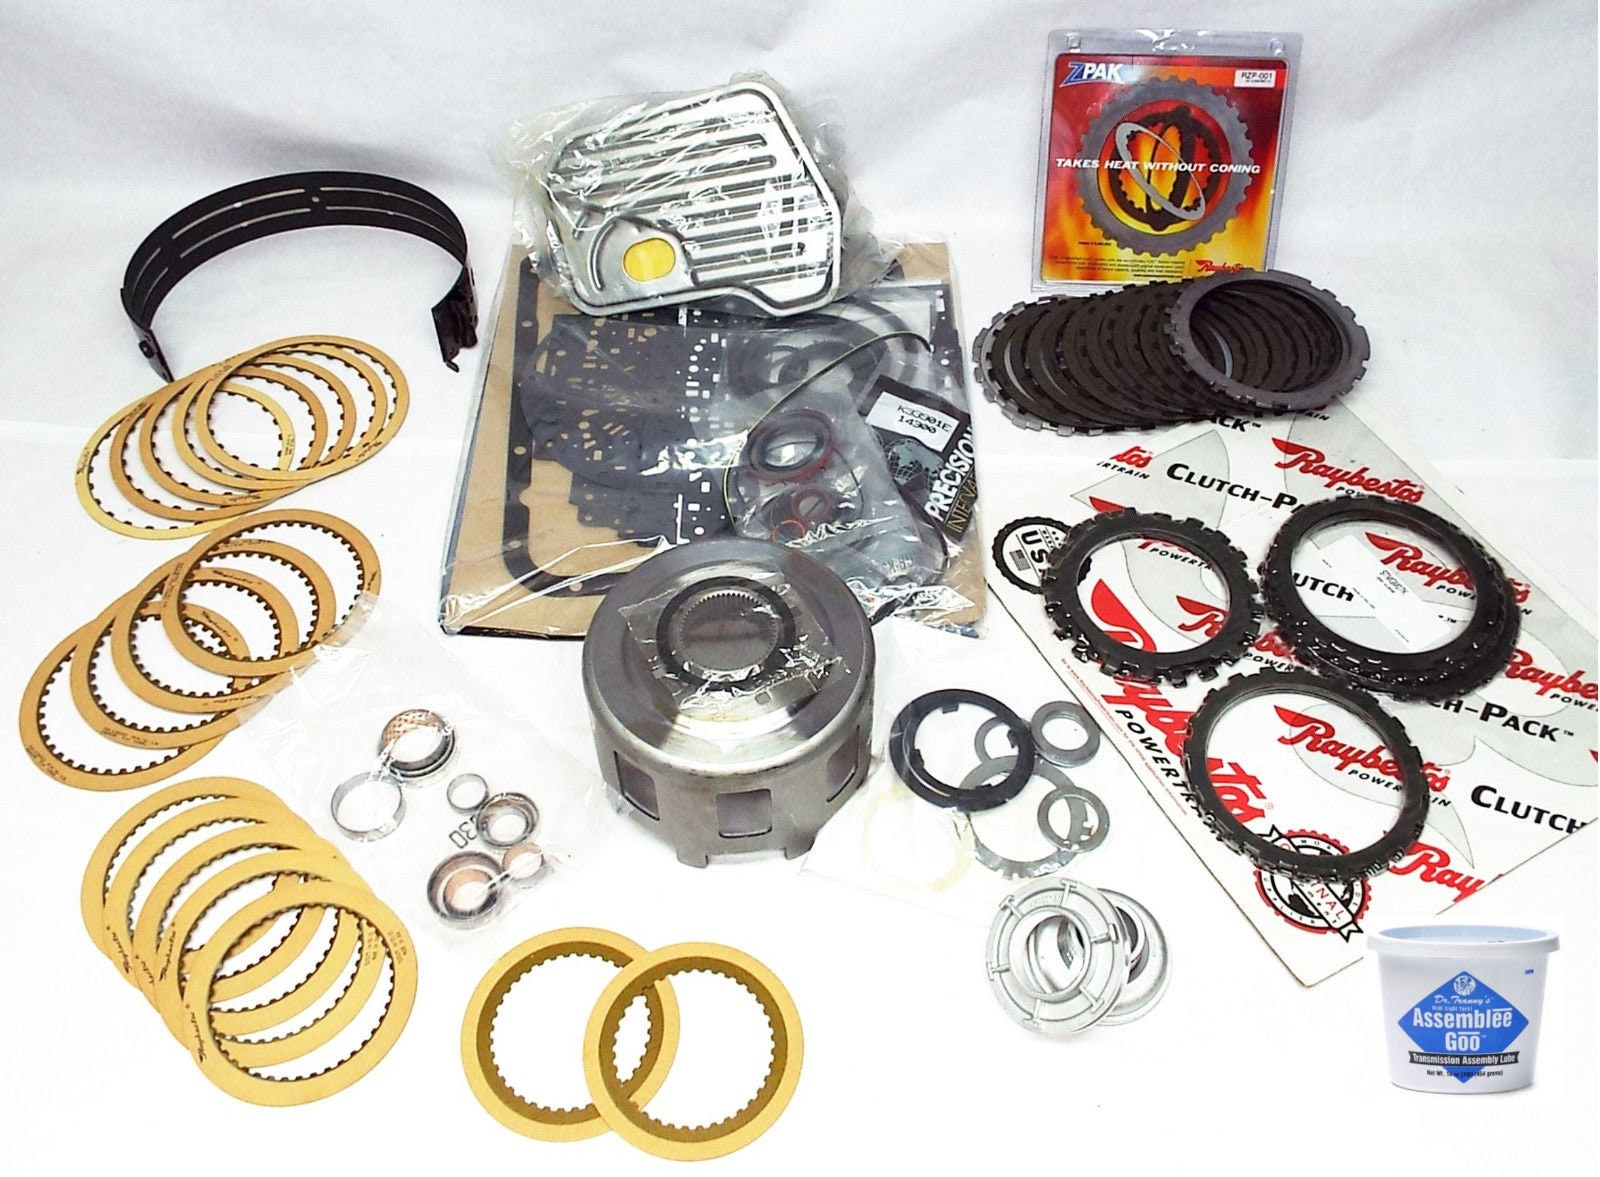 Used, 4L60E 4L65E 1993-1996 Super Master Rebuild Kit HD High Performance Koleen ZPACK With Heavy Duty Shell And Assembly GOO Plus for sale